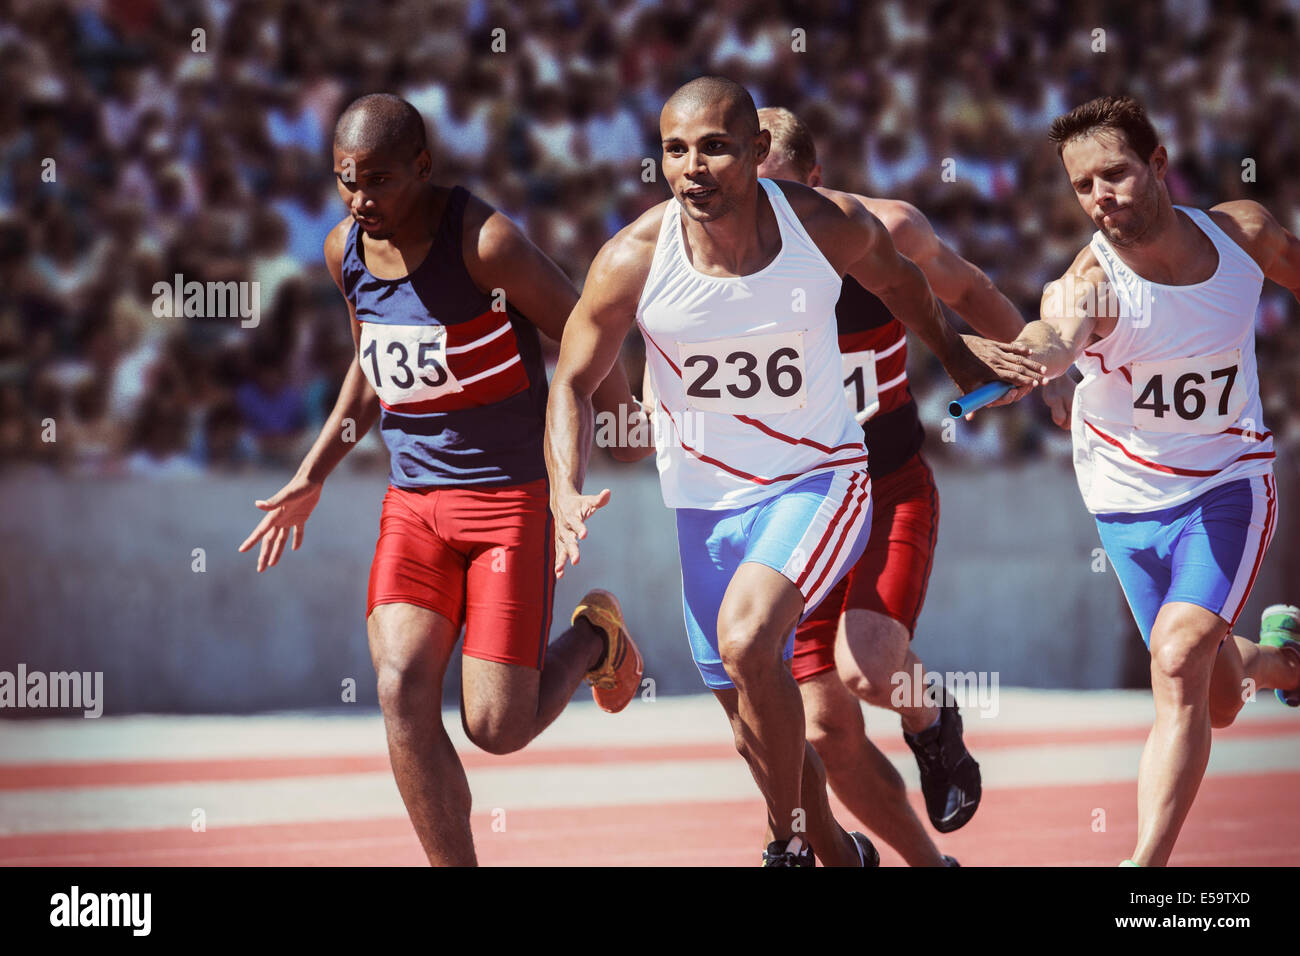 Relay runners exchanging batons on track - Stock Image